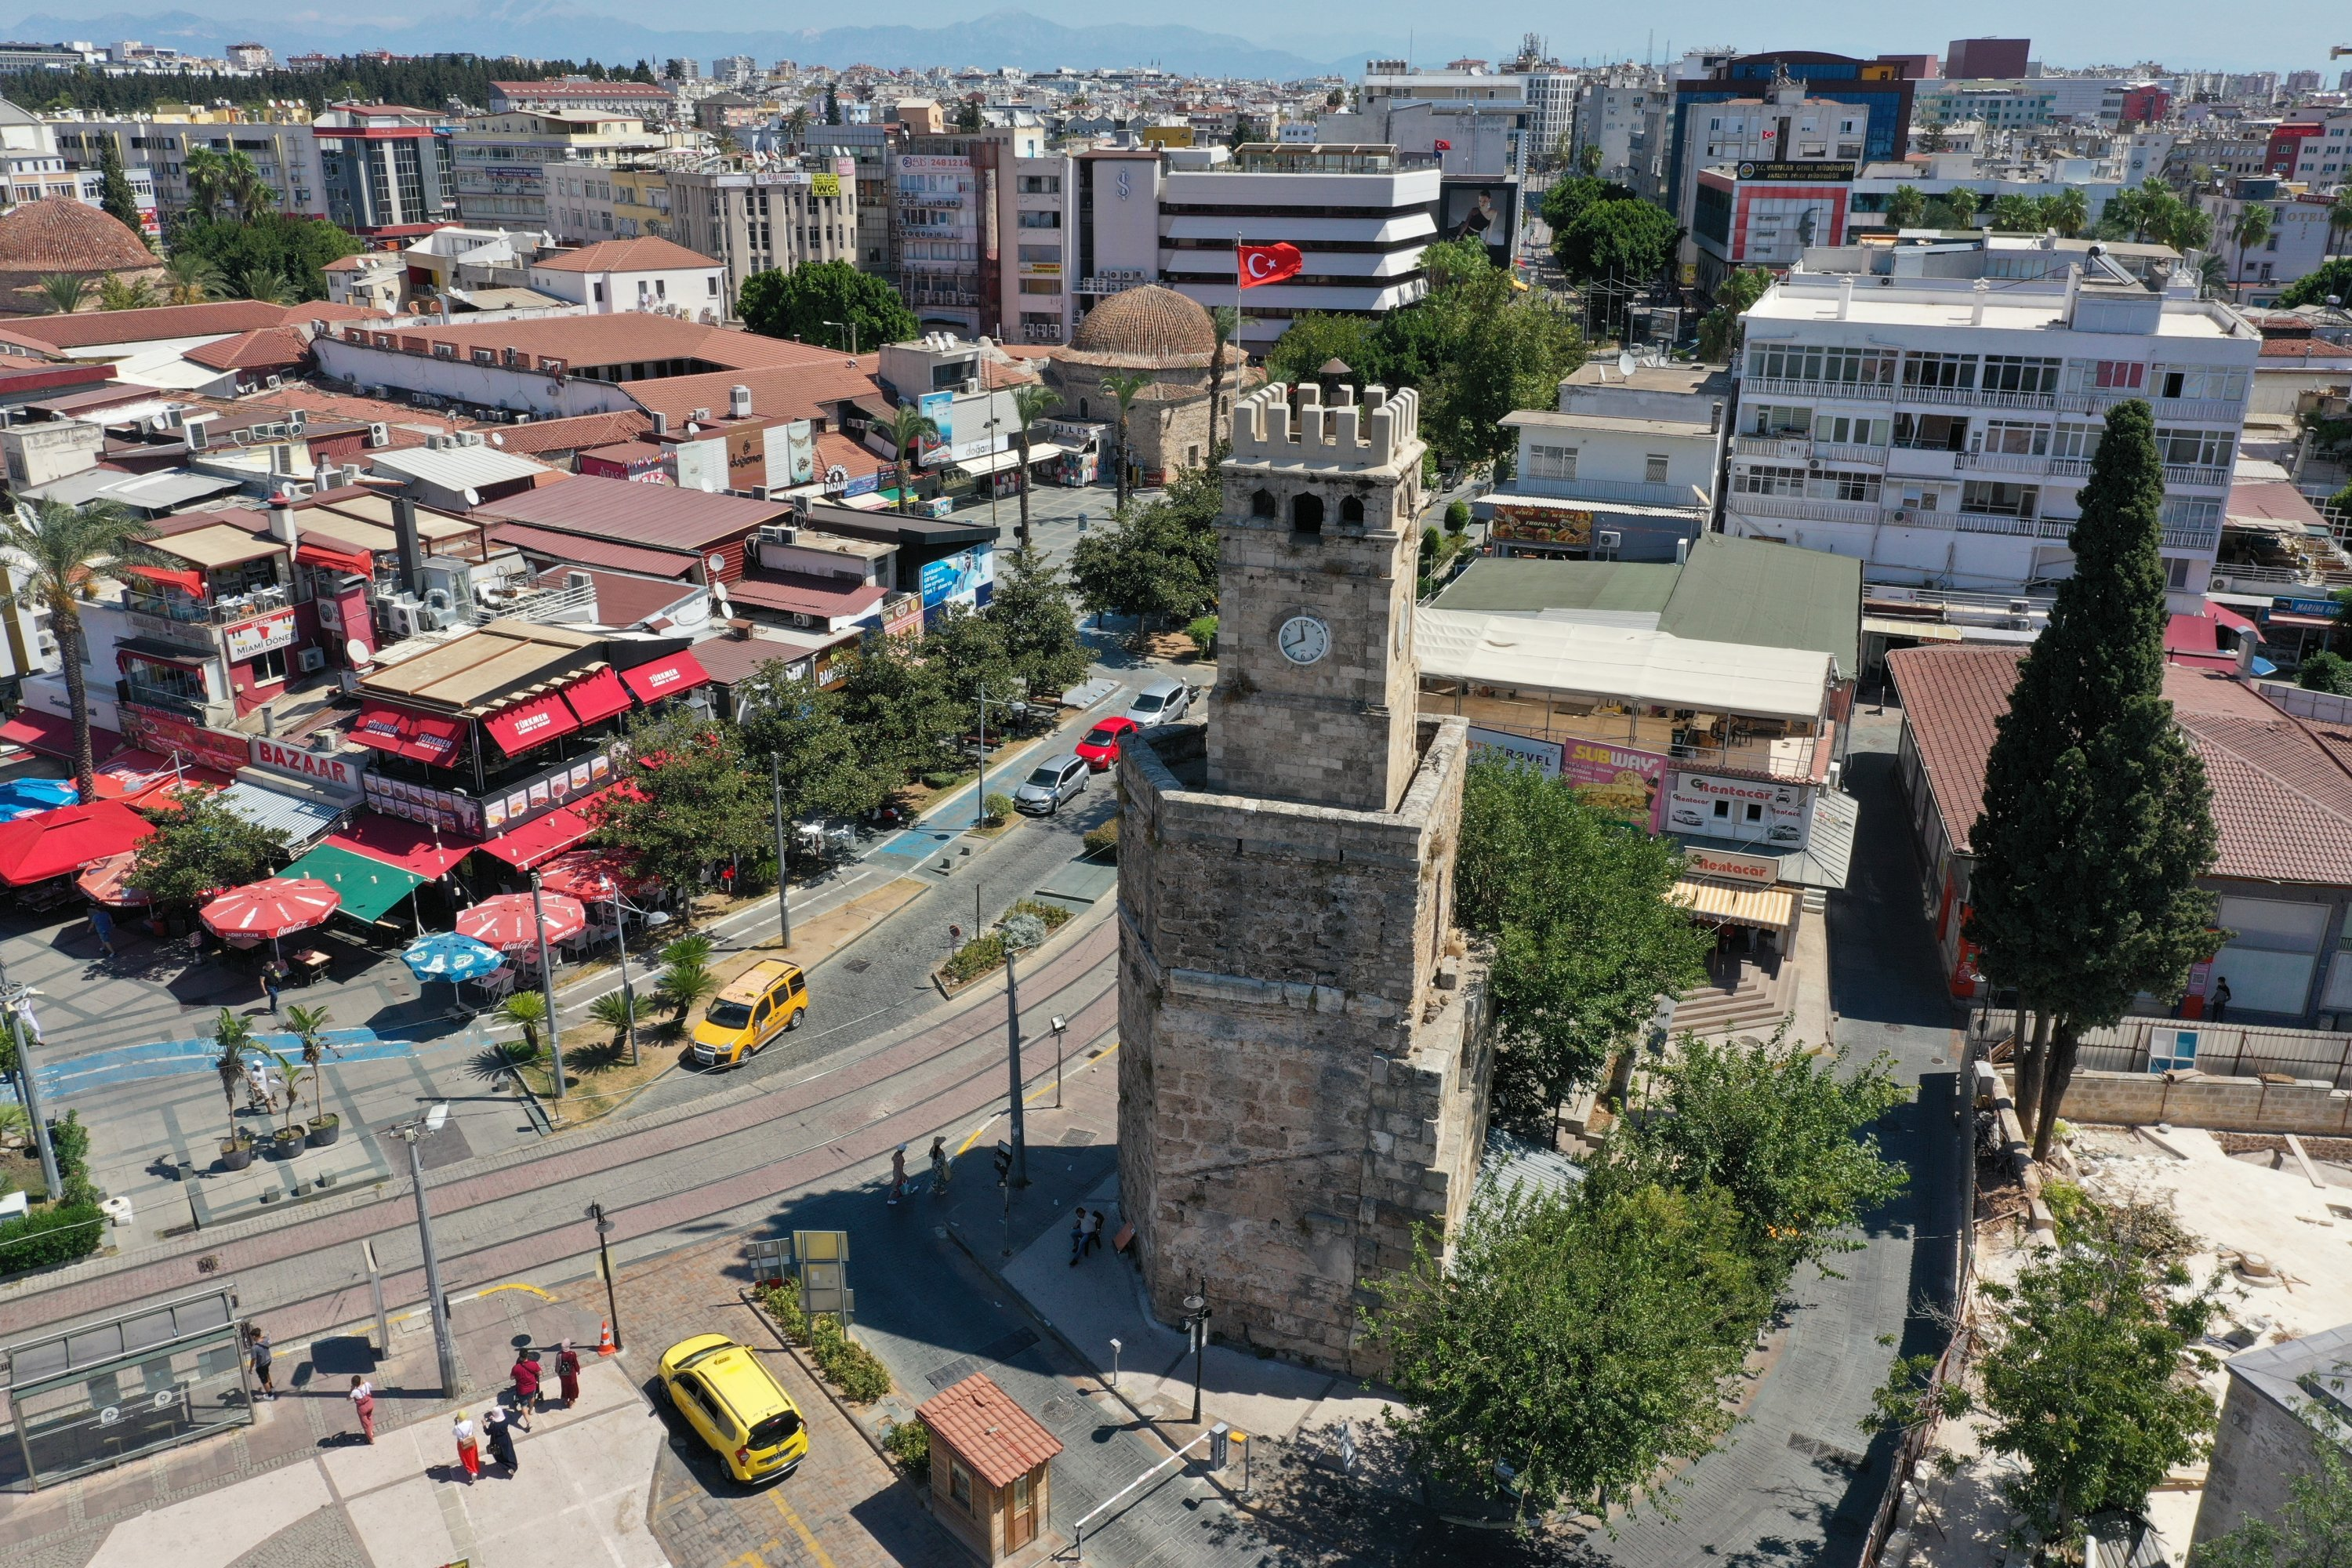 The clock tower in the southern city of Antalya is located in the Kalekapısı area, Antalya province, Turkey, Aug. 24, 2020. (AA Photo)